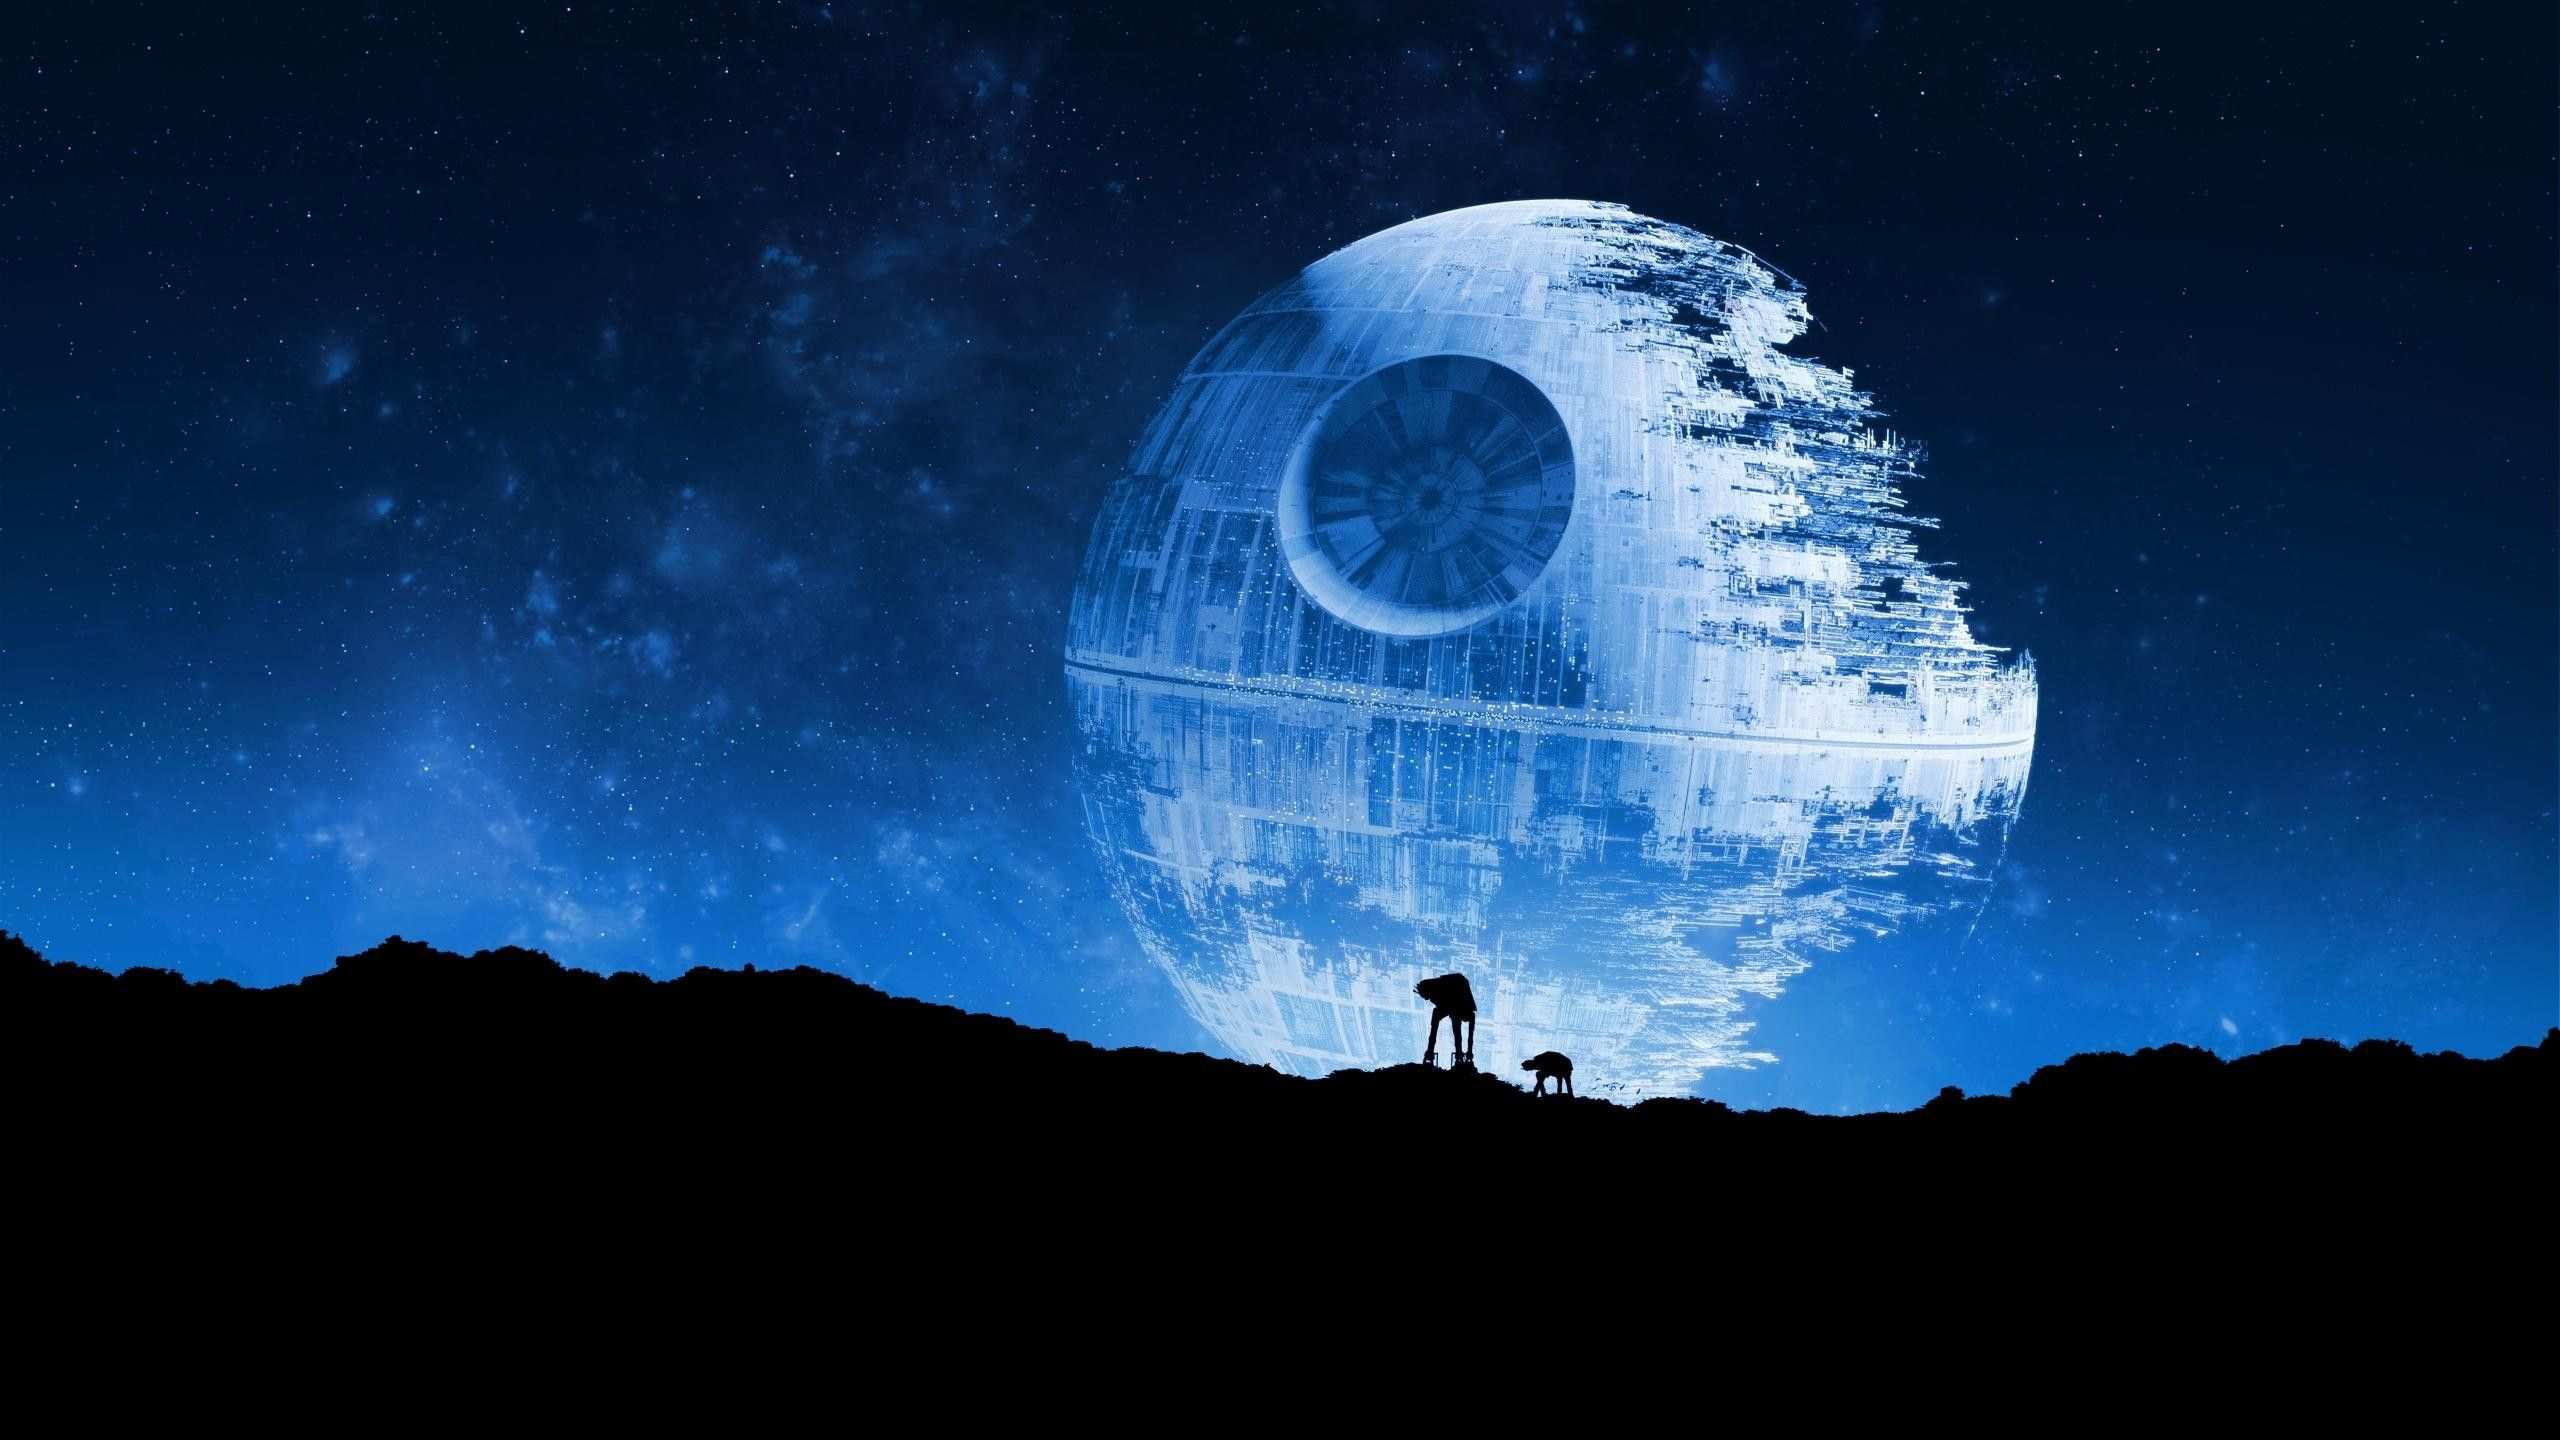 Star Wars Dual Screen Wallpapers Top Free Star Wars Dual Screen Backgrounds Wallpaperaccess Death Star Wallpaper Star Destroyer Wallpaper Star Wallpaper